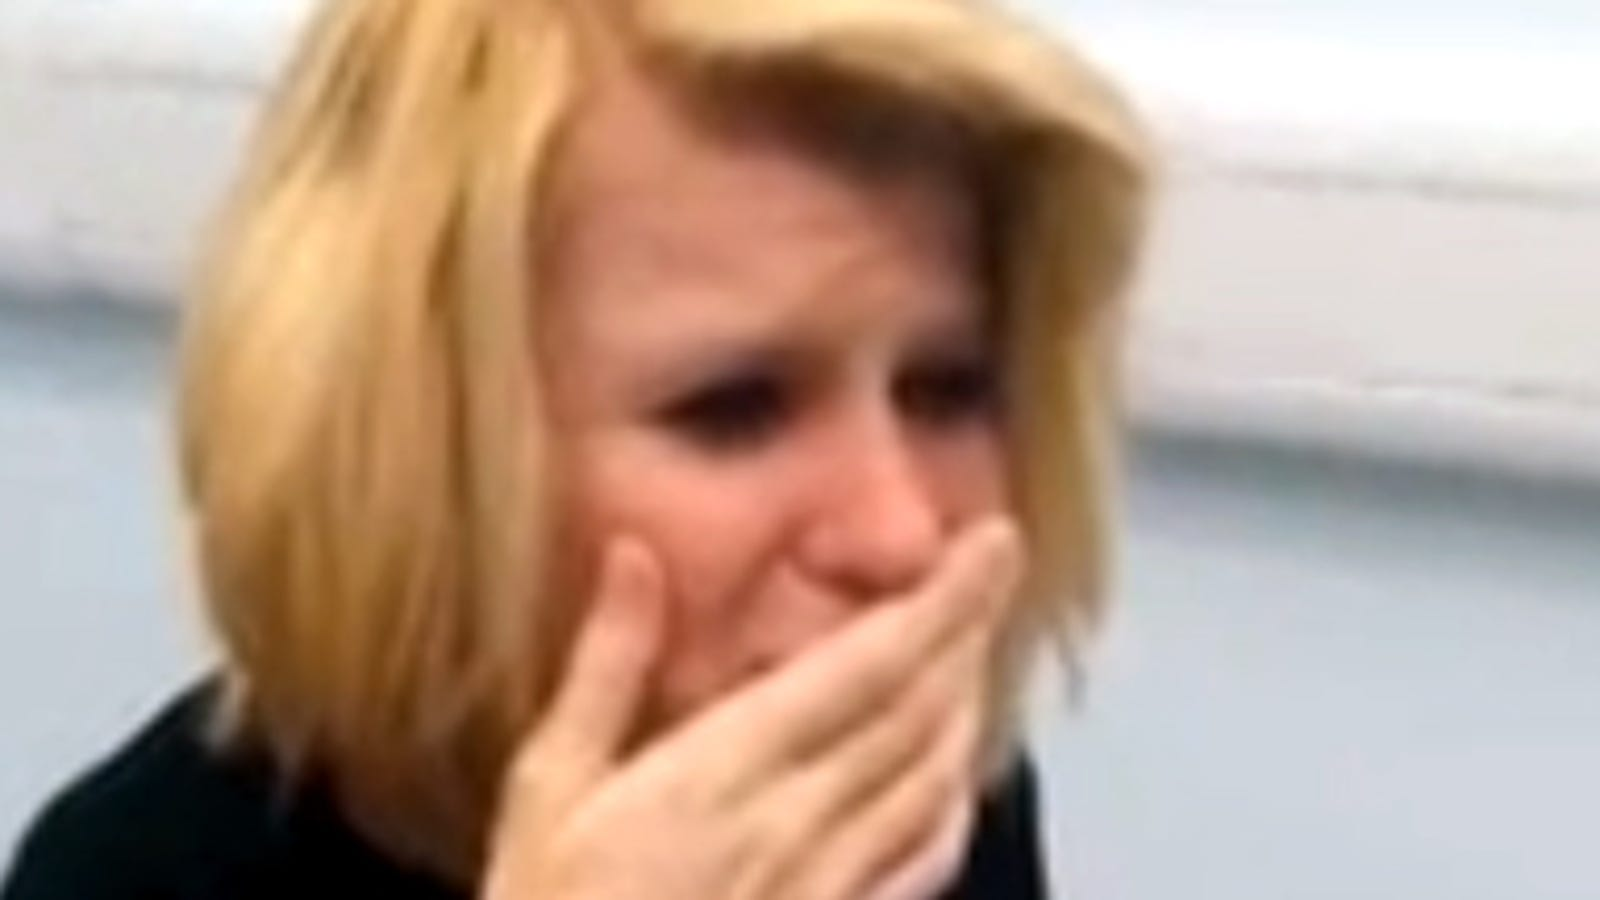 The incredible moment in which a deaf woman hears for the first time